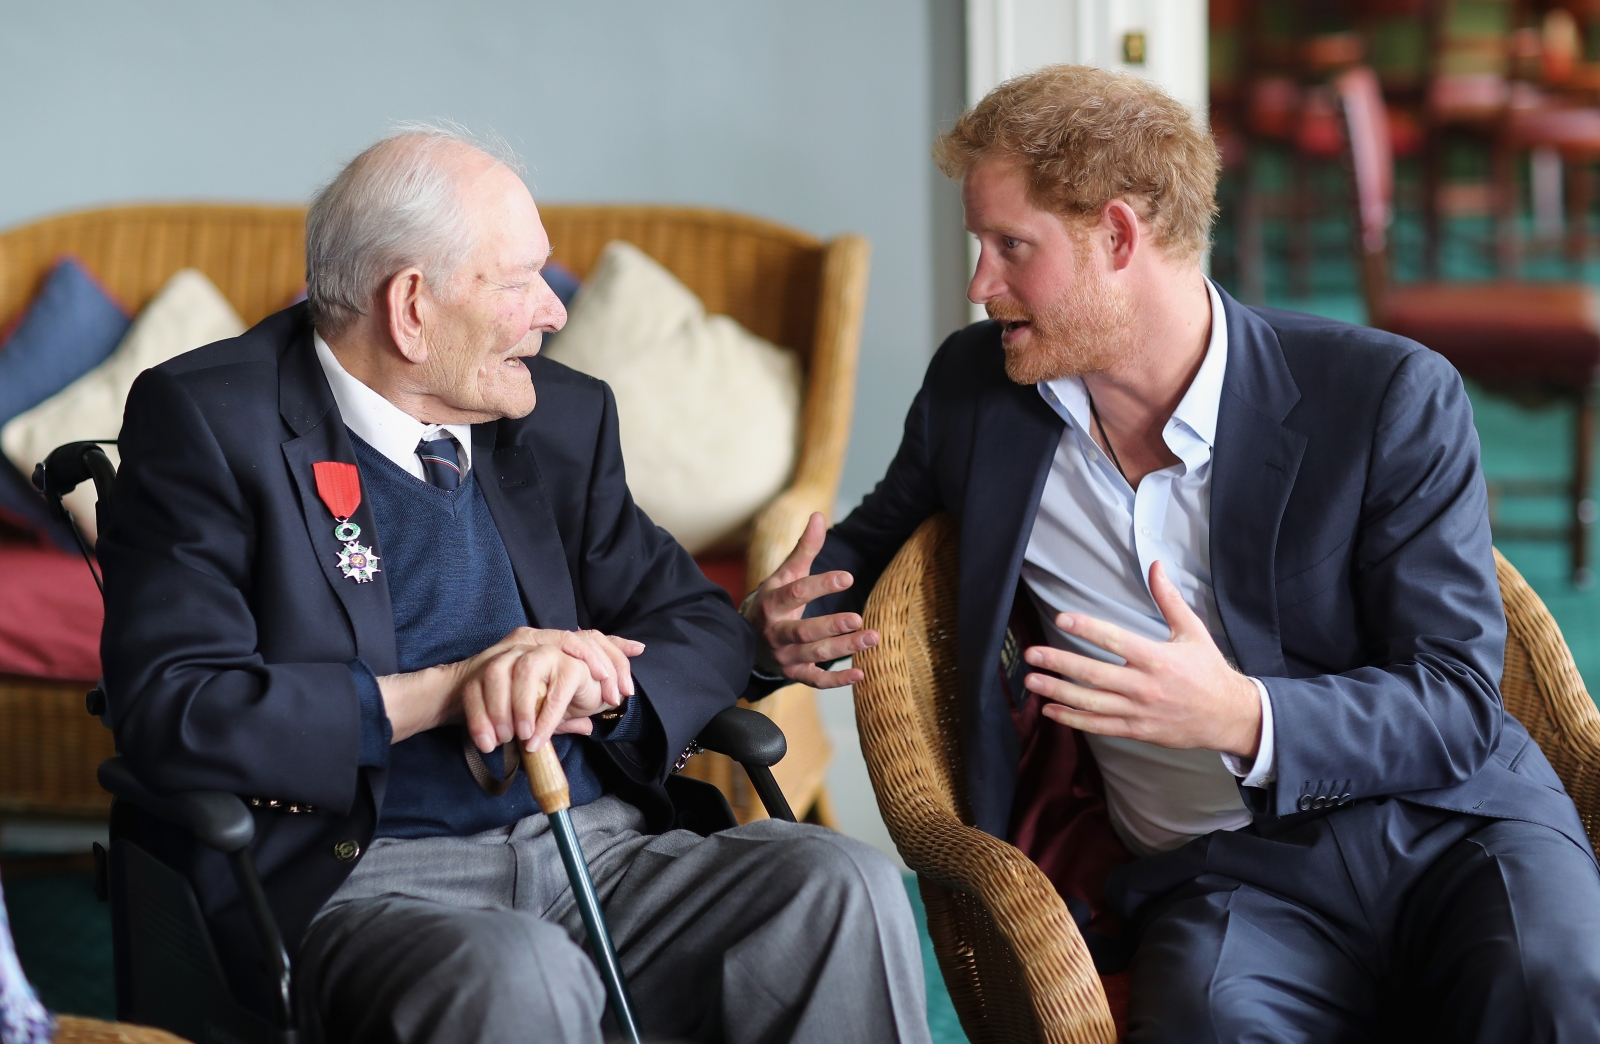 Prince Harry and Anthony Colgan